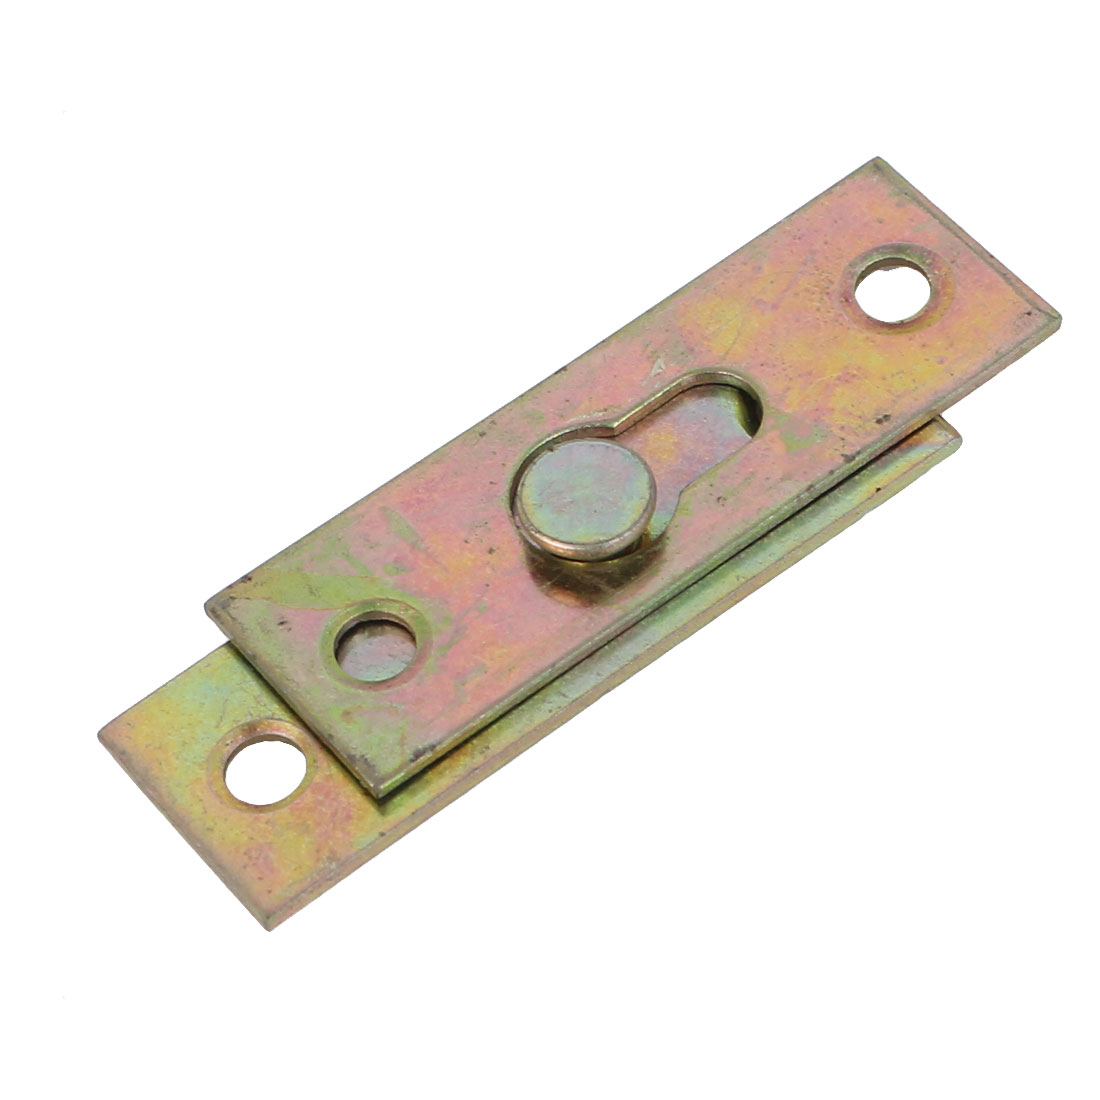 Furniture Bed Rail Hook Plate Bracket Connector Brass Tone